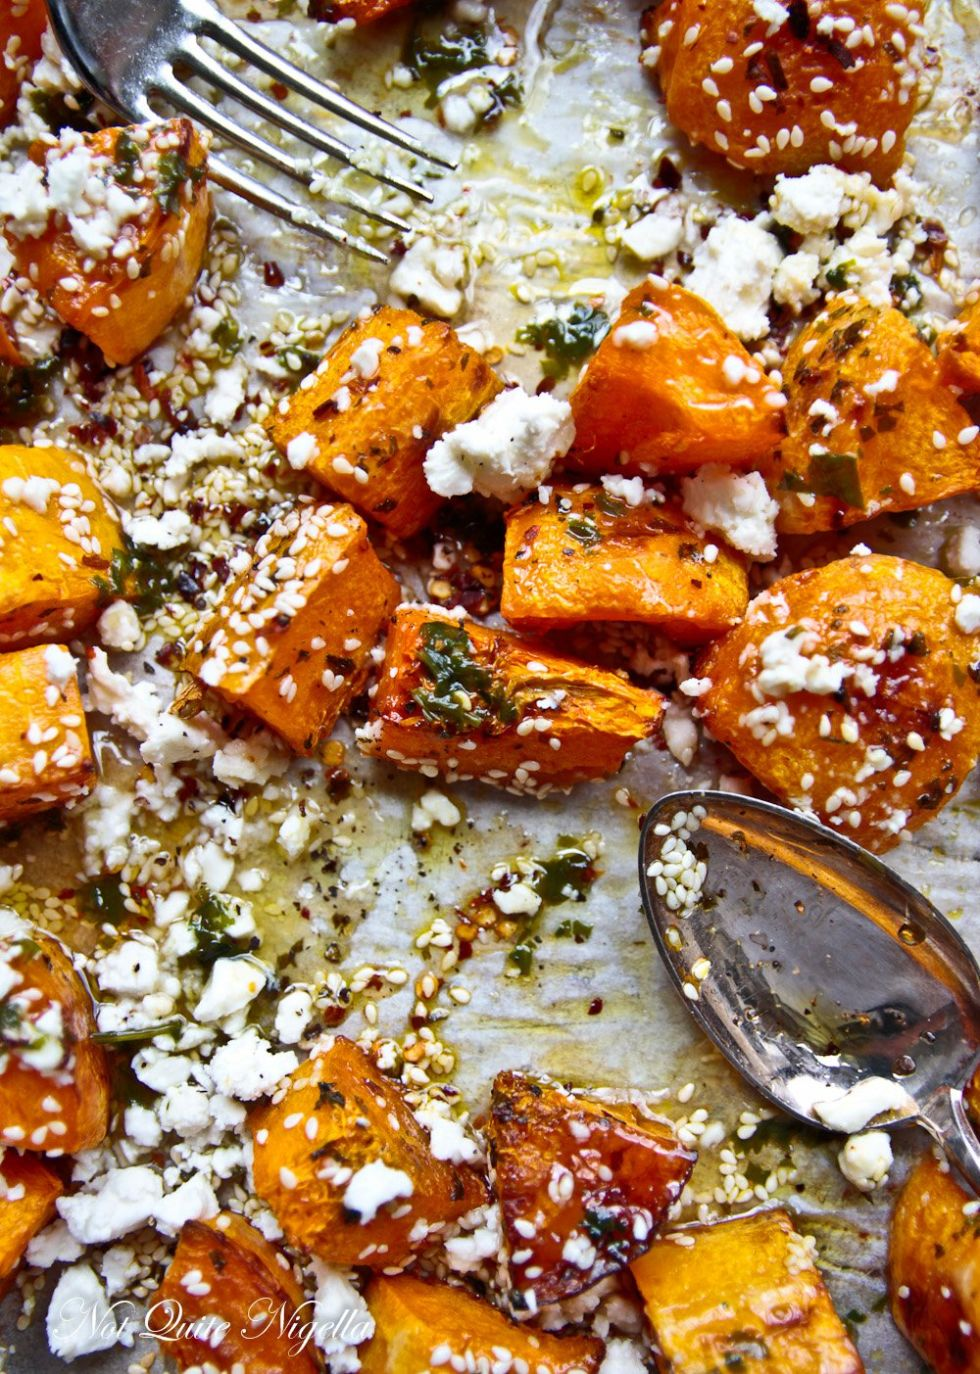 13 best healthy pumpkin recipes cooking healthy with pumpkin 13 best healthy pumpkin recipes cooking healthy with pumpkindelish forumfinder Images